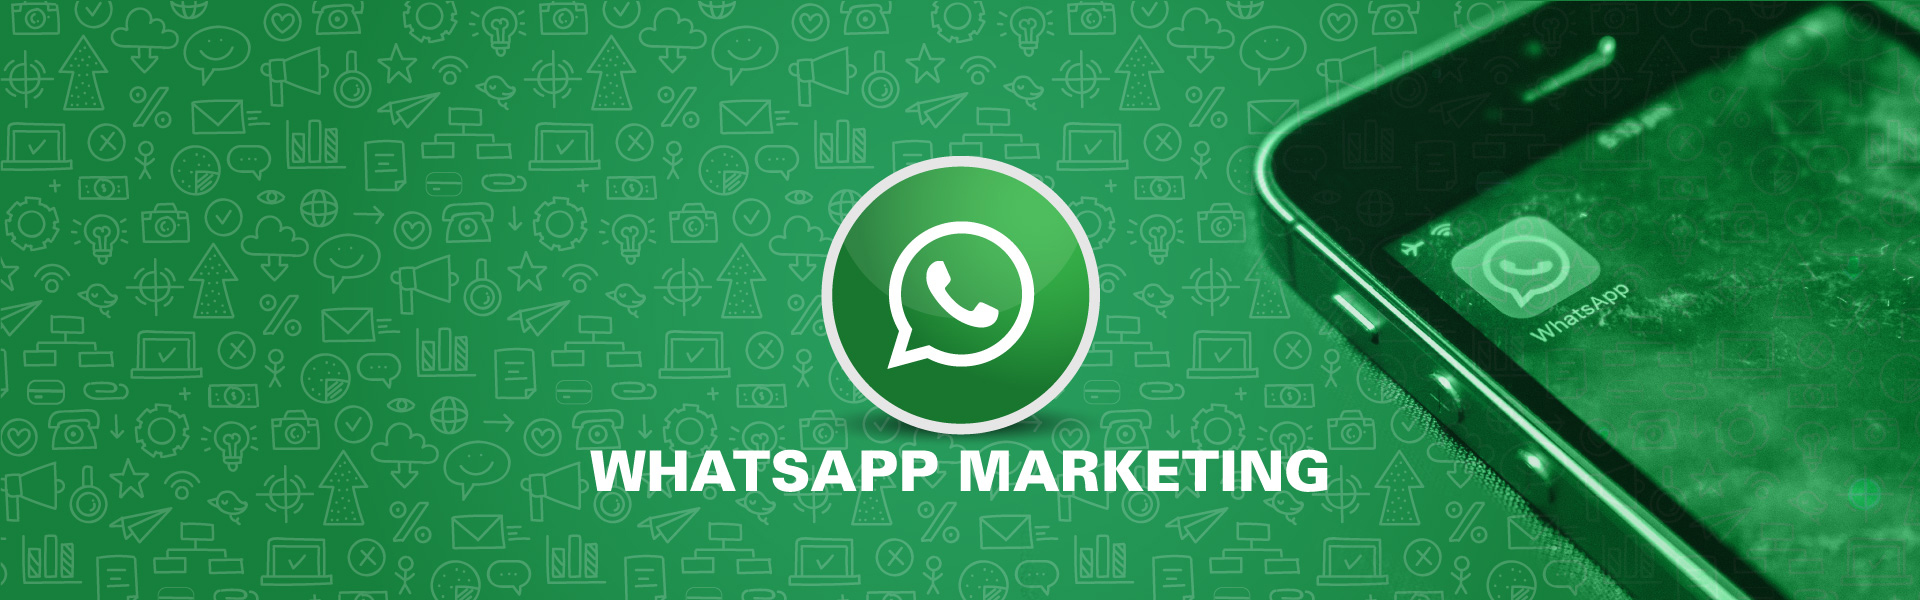 Whatsapp Marketing in Nigeria using whatsapp Bulk Sender